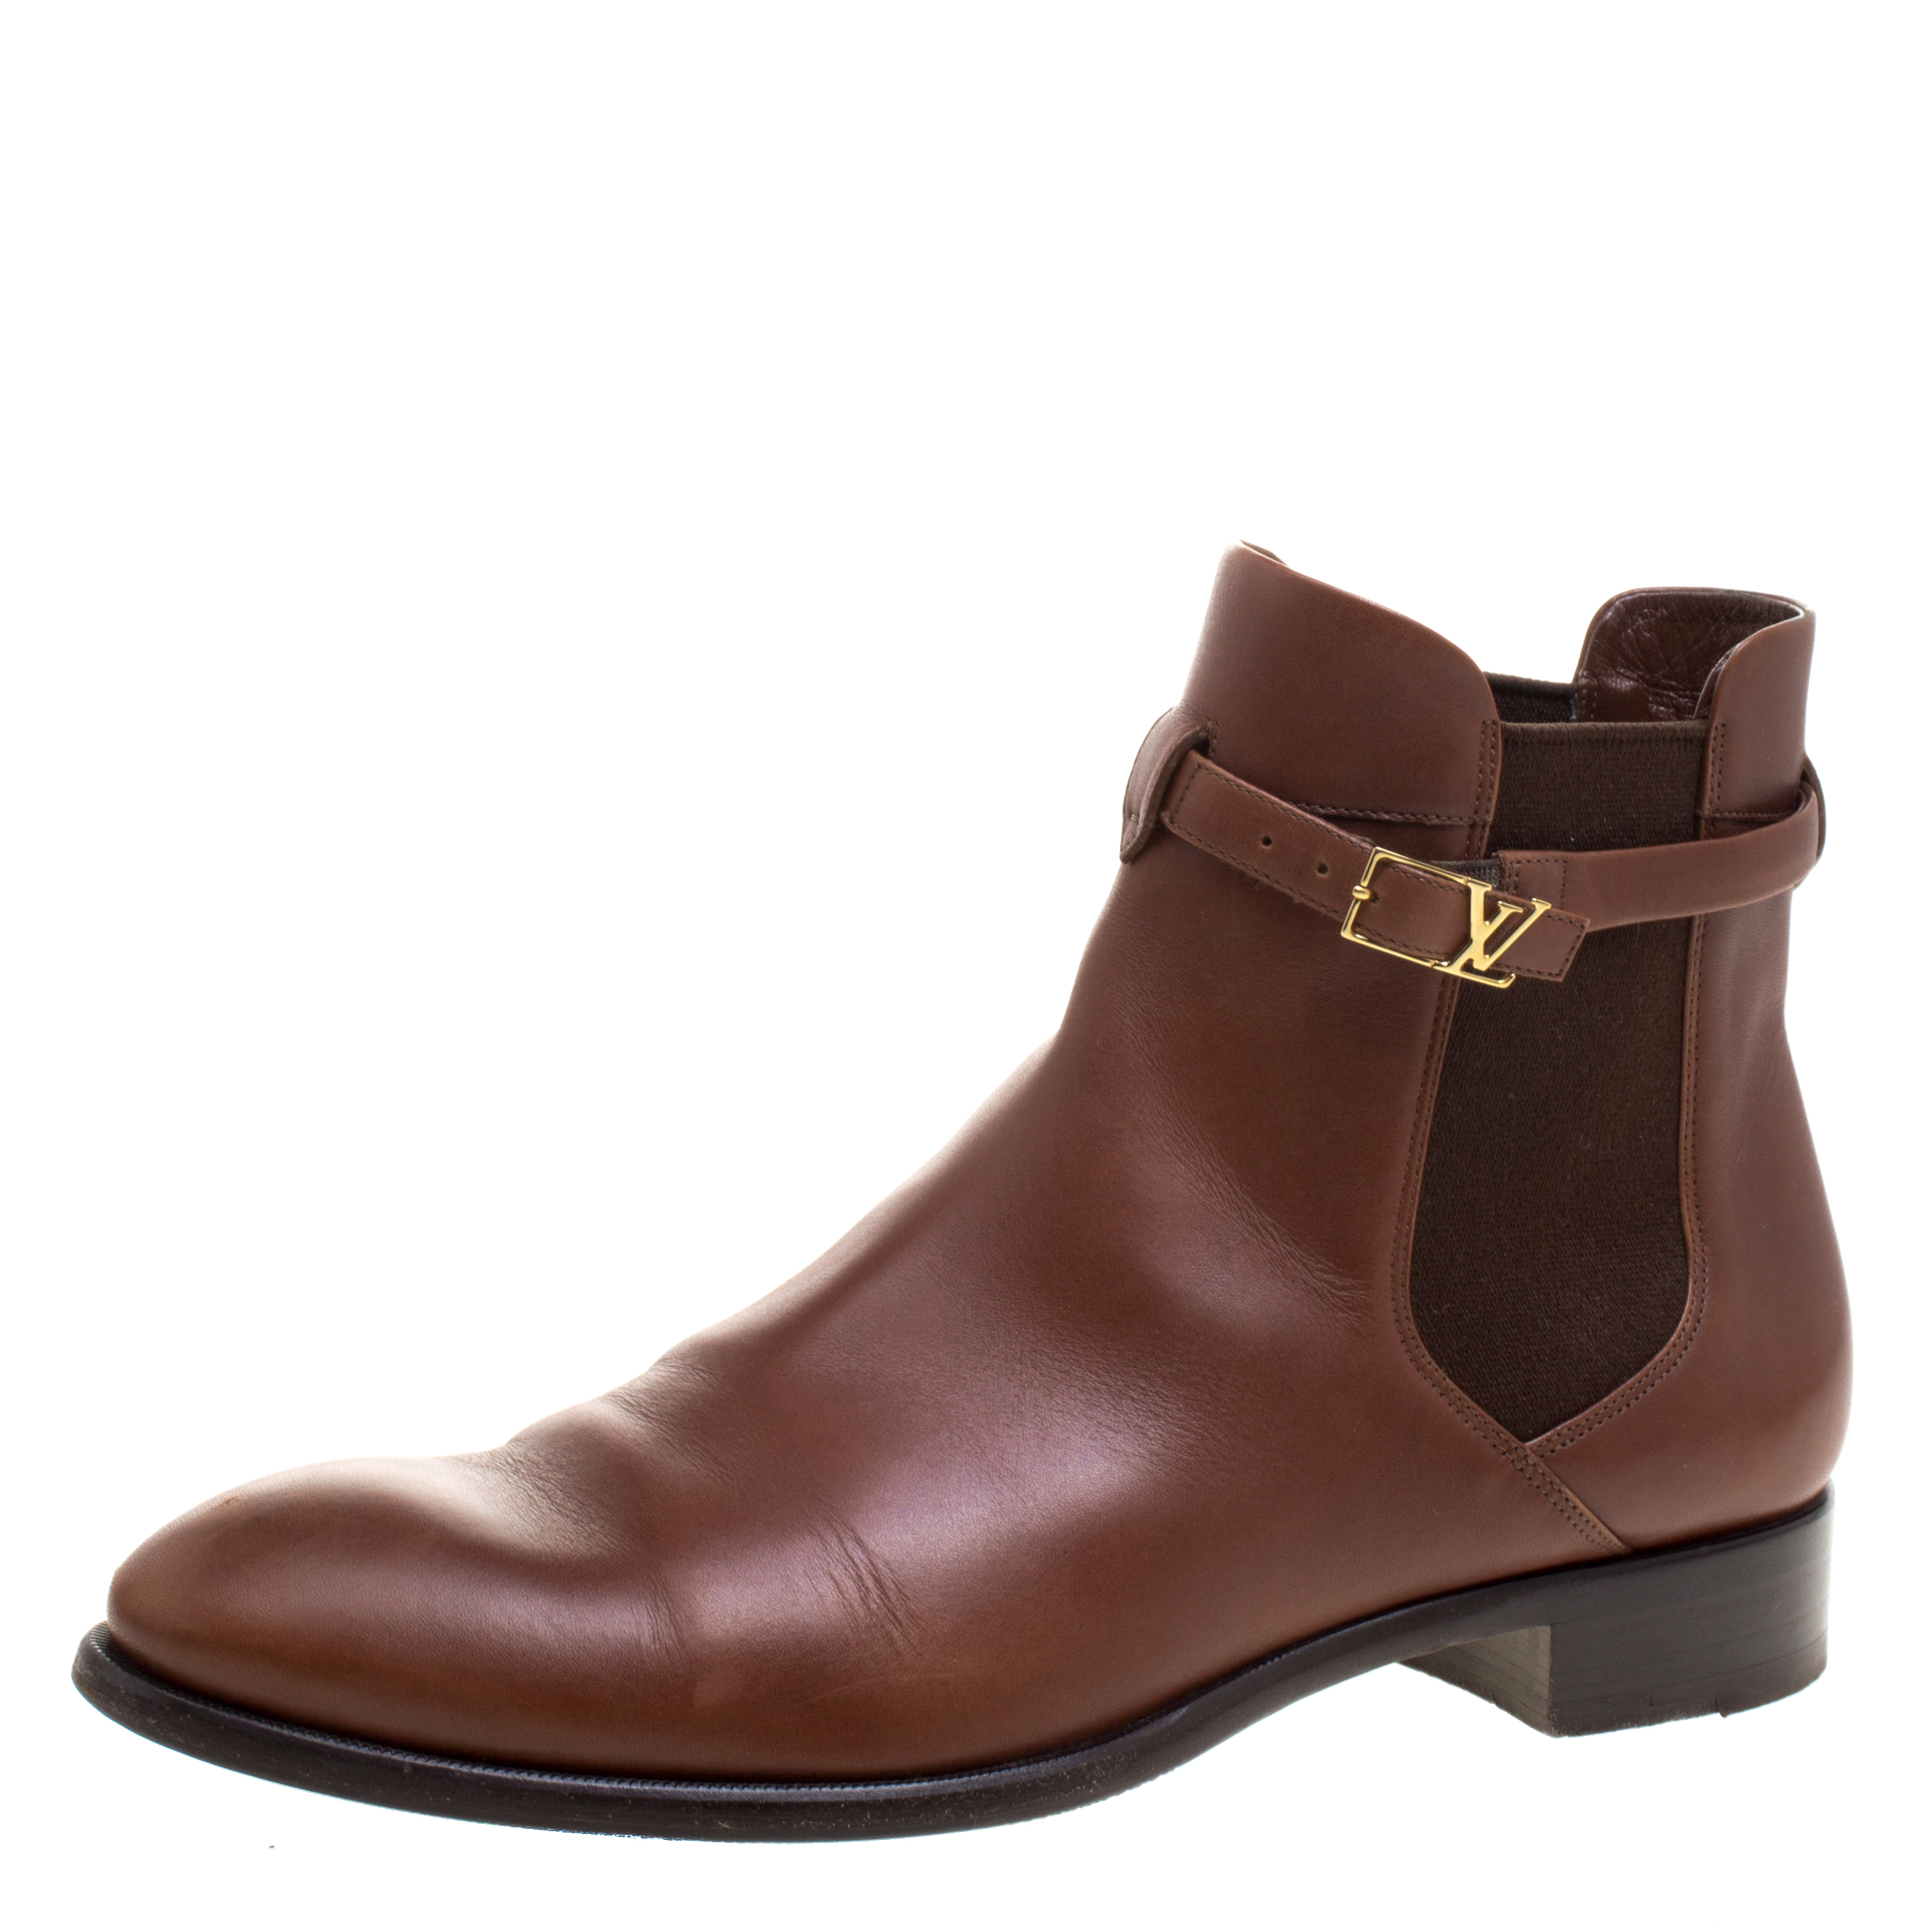 LOUIS VUITTON Leather Buckled Boots z5WeQ